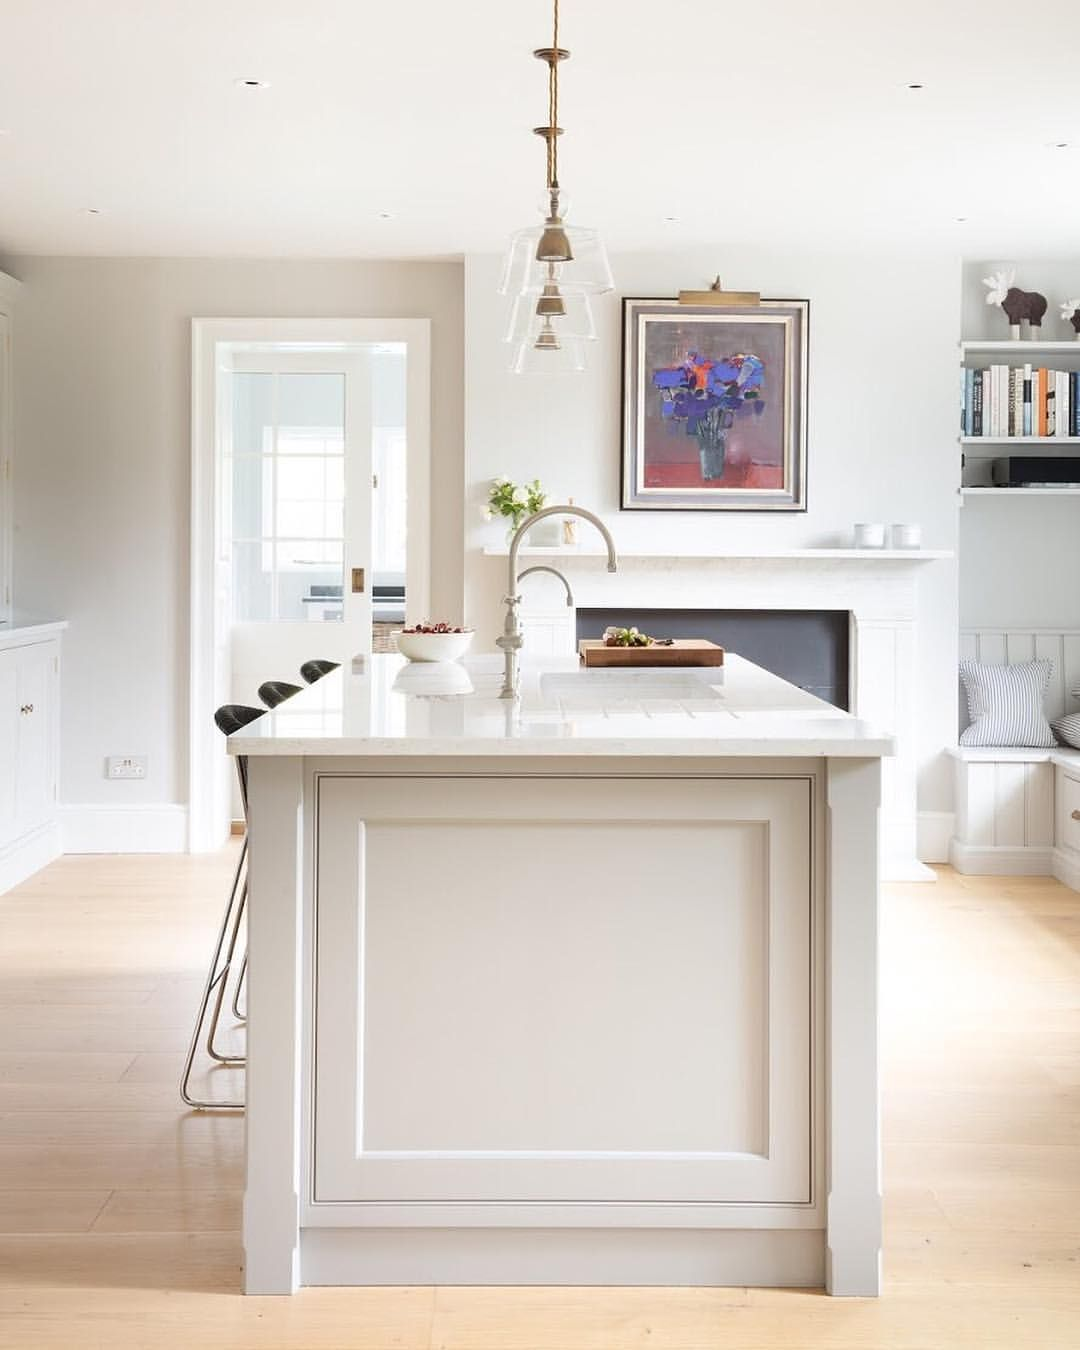 I Love The Simplicity Of Our Nickleby Cabinetry At Humphreymunson These End Pa Kitchen And Bath Remodeling English Kitchens Design Kitchen Island End Panels